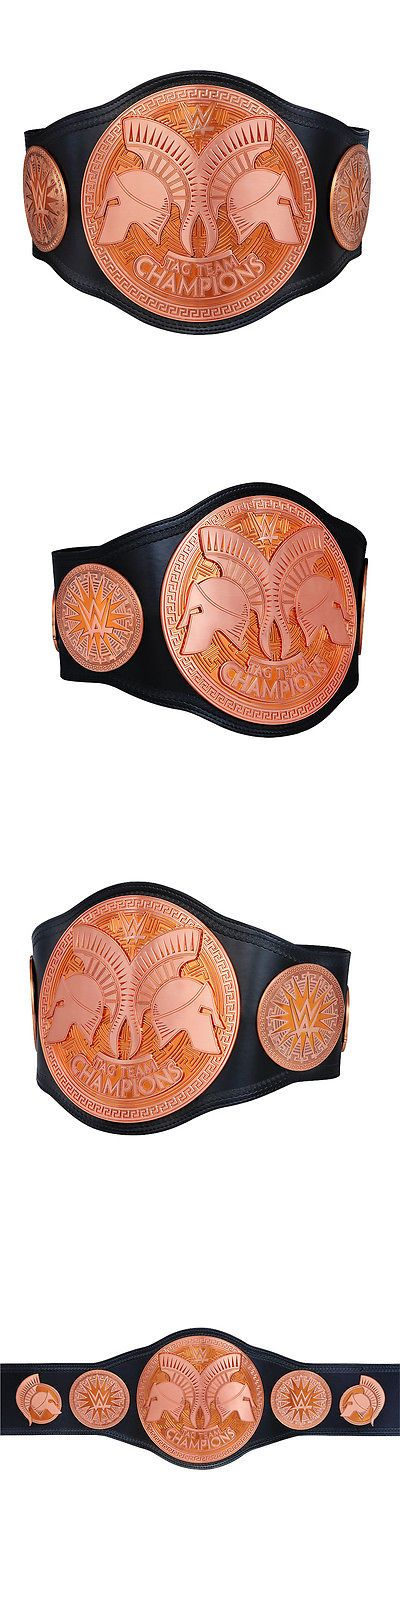 Accessories 36306: Wwe Tag Team Championship 2014 Replica Belt -> BUY IT NOW ONLY: $349.99 on eBay!